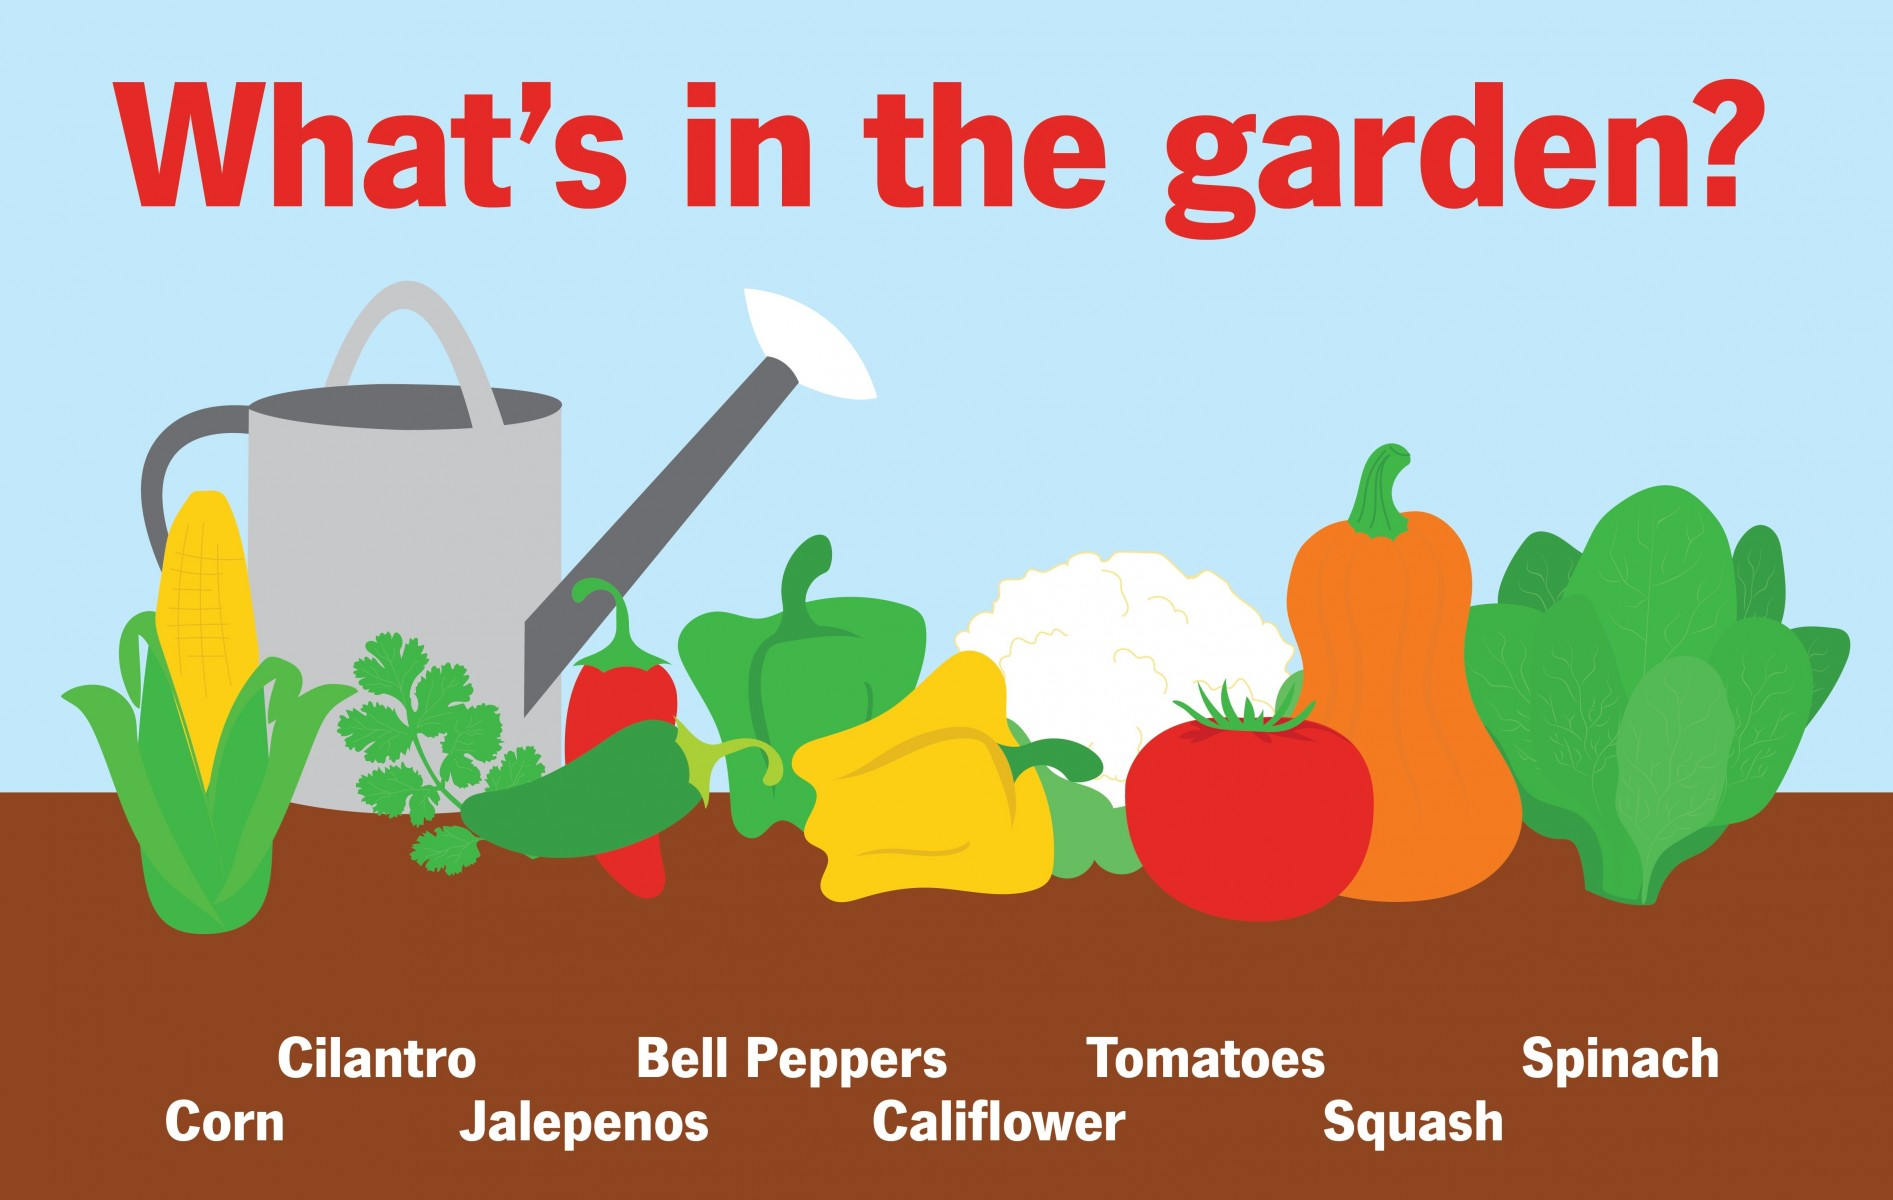 Lots of vegetables are in the garden!